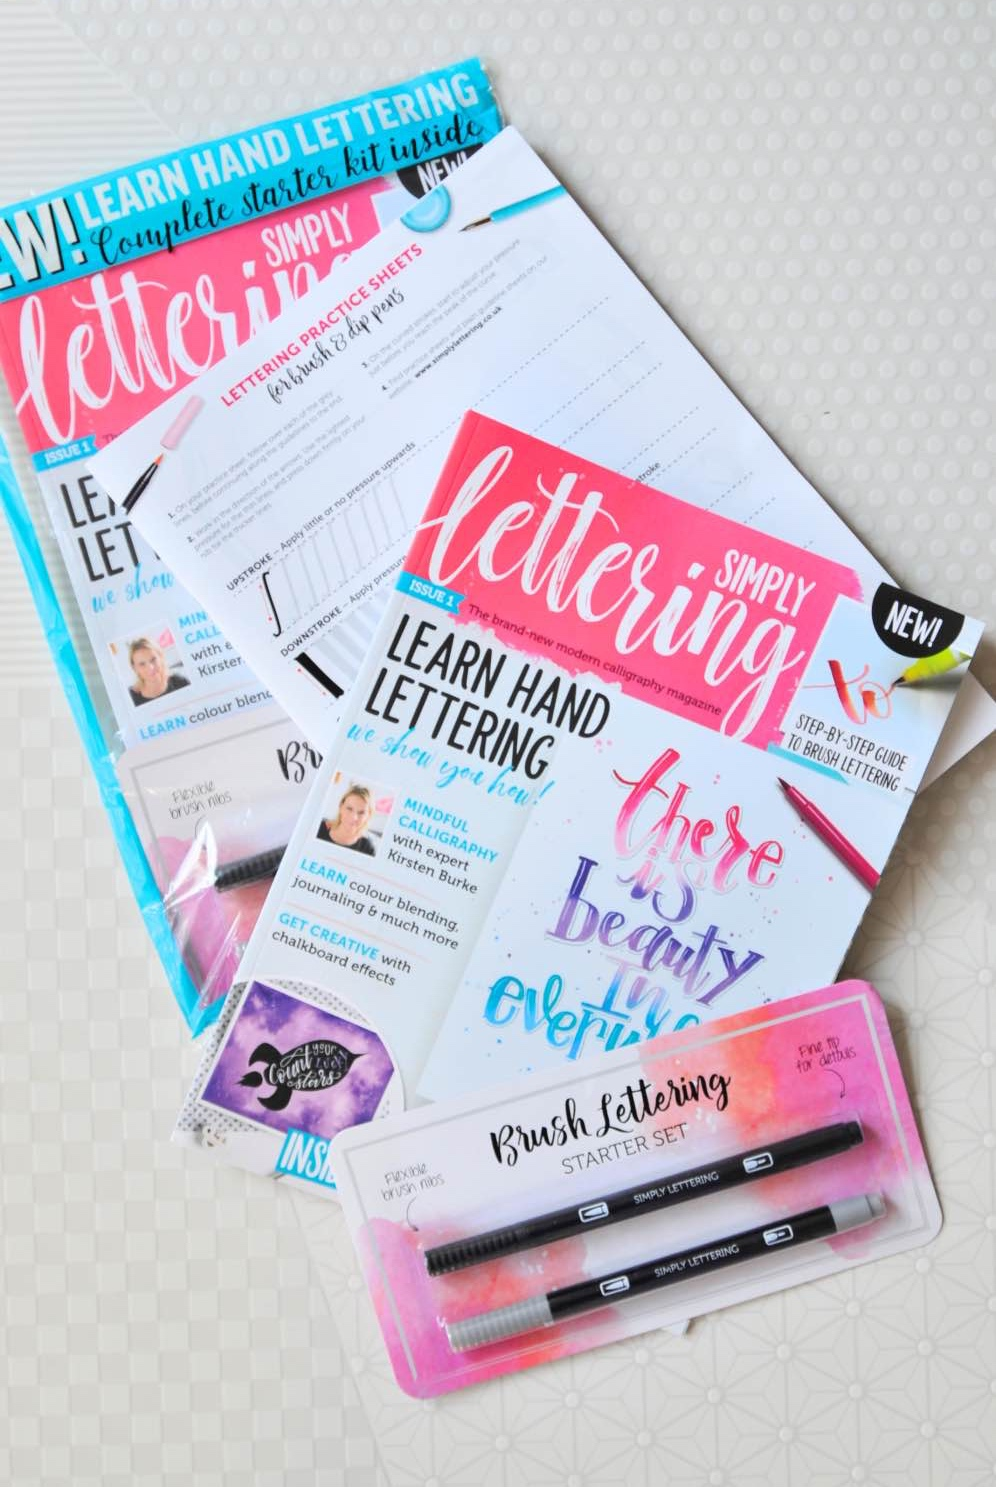 simply lettering magazine issue 1 pop shop america_update